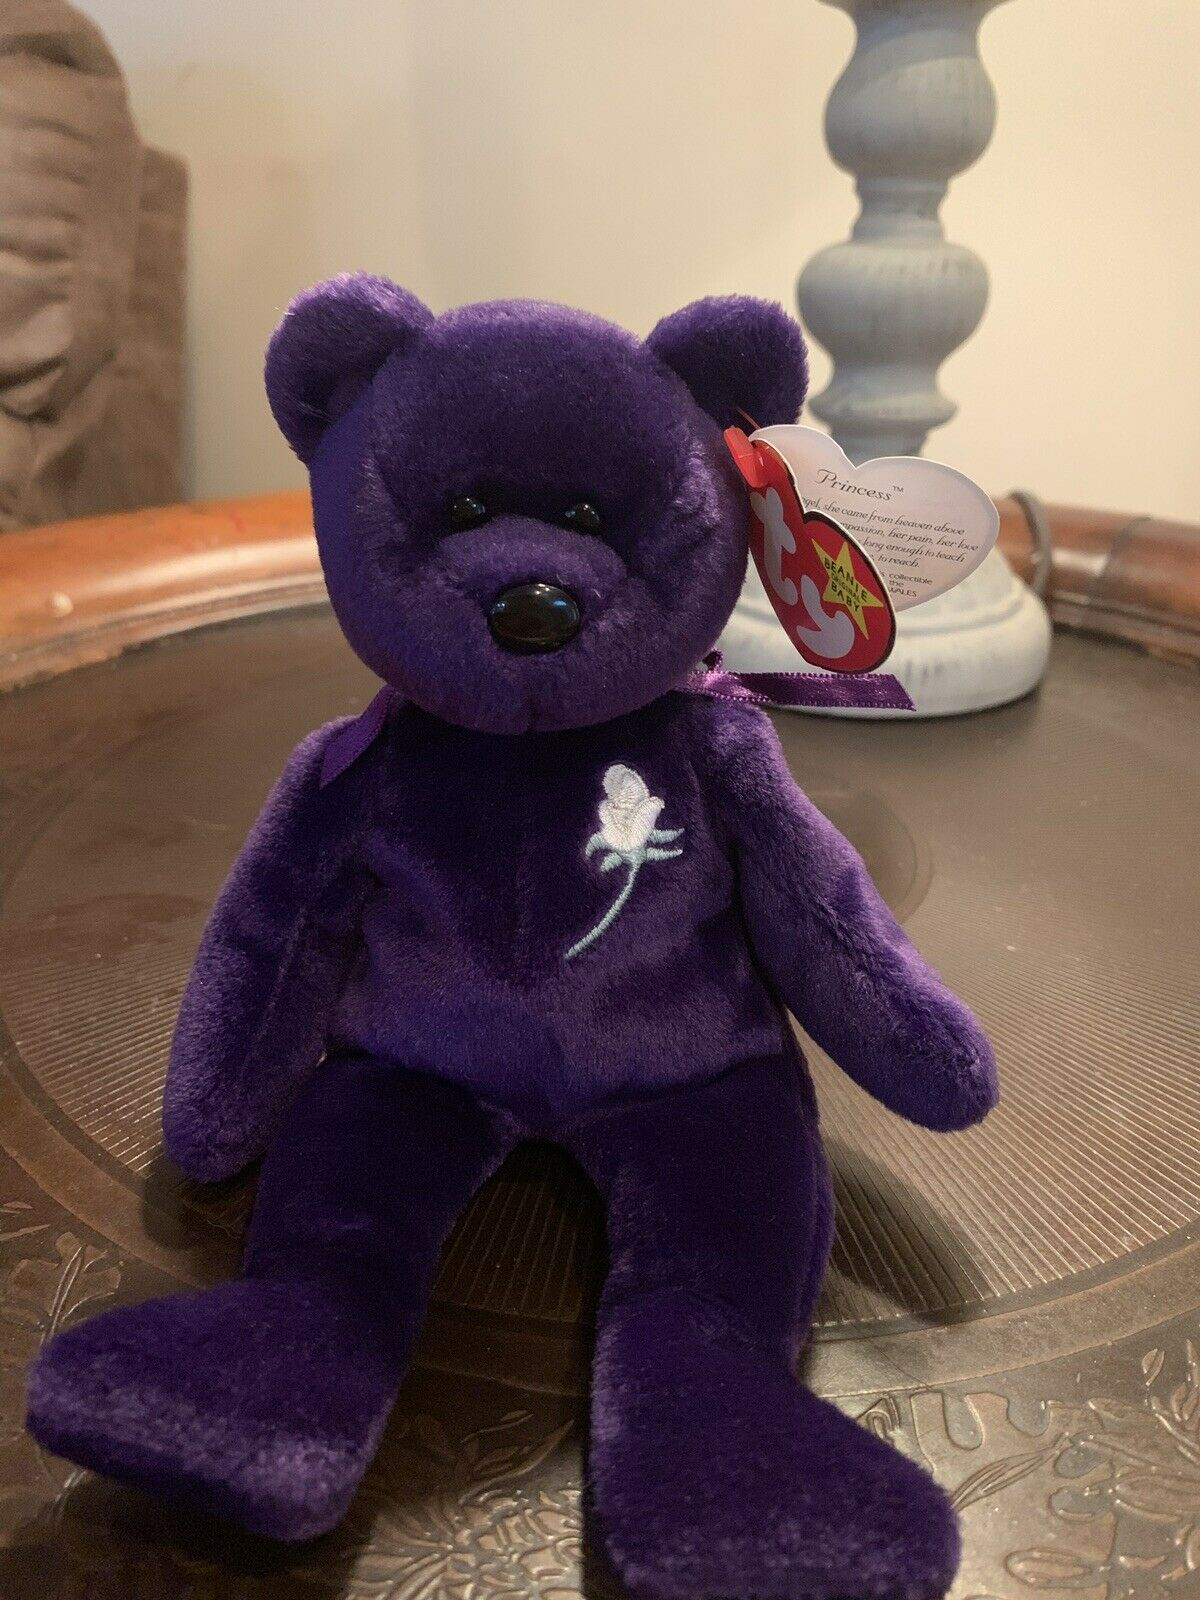 PRINCESS TY BEANIE BABY Extremely Rare First Edition